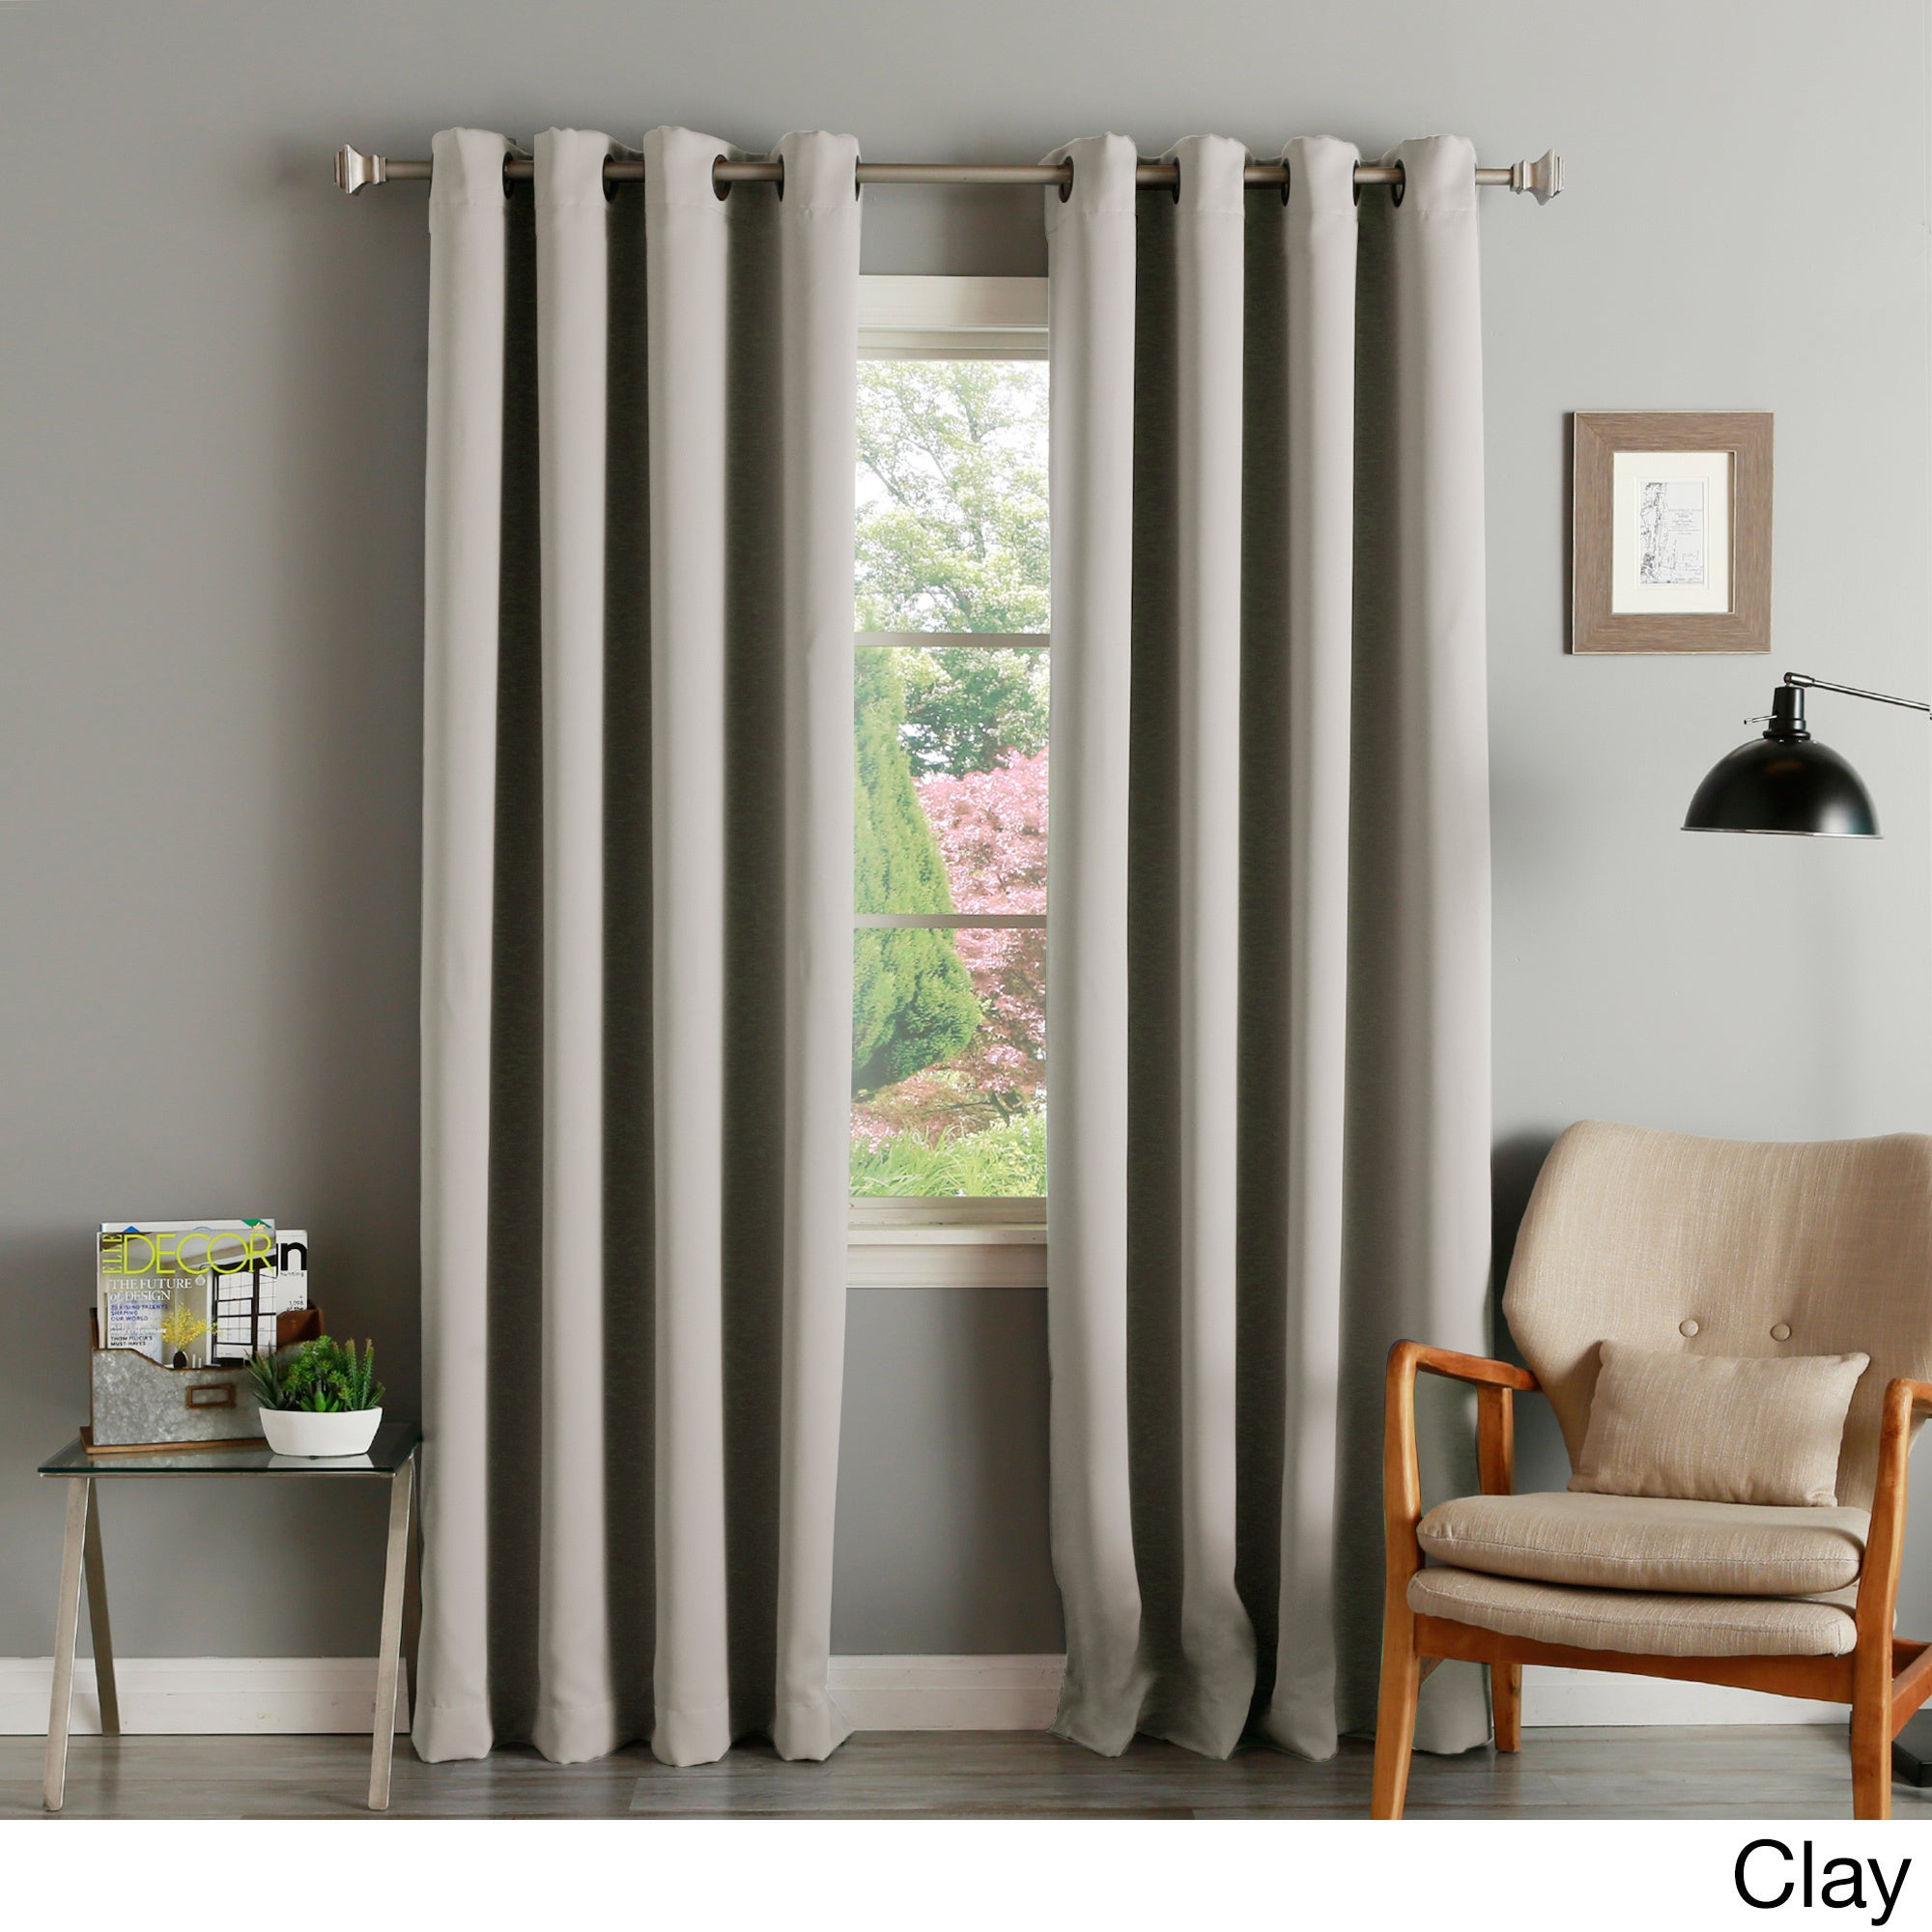 Aurora Home Thermal Insulated Blackout Grommet Top Curtain Panel Pair Intended For Insulated Thermal Blackout Curtain Panel Pairs (View 8 of 20)